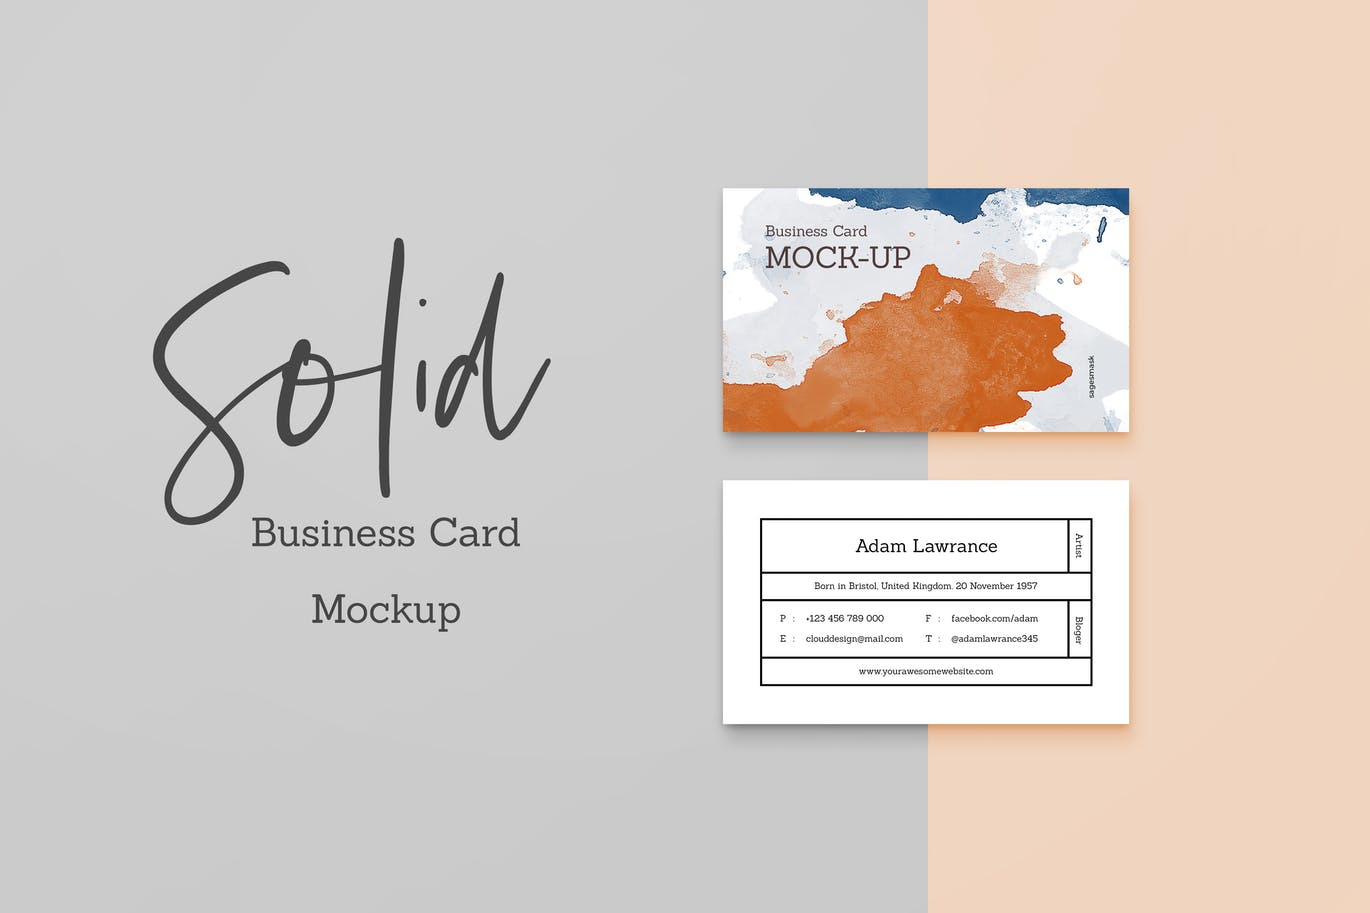 Download Solid Business Card Mockup In Stationery Mockups On Yellow Images Creative Store PSD Mockup Templates